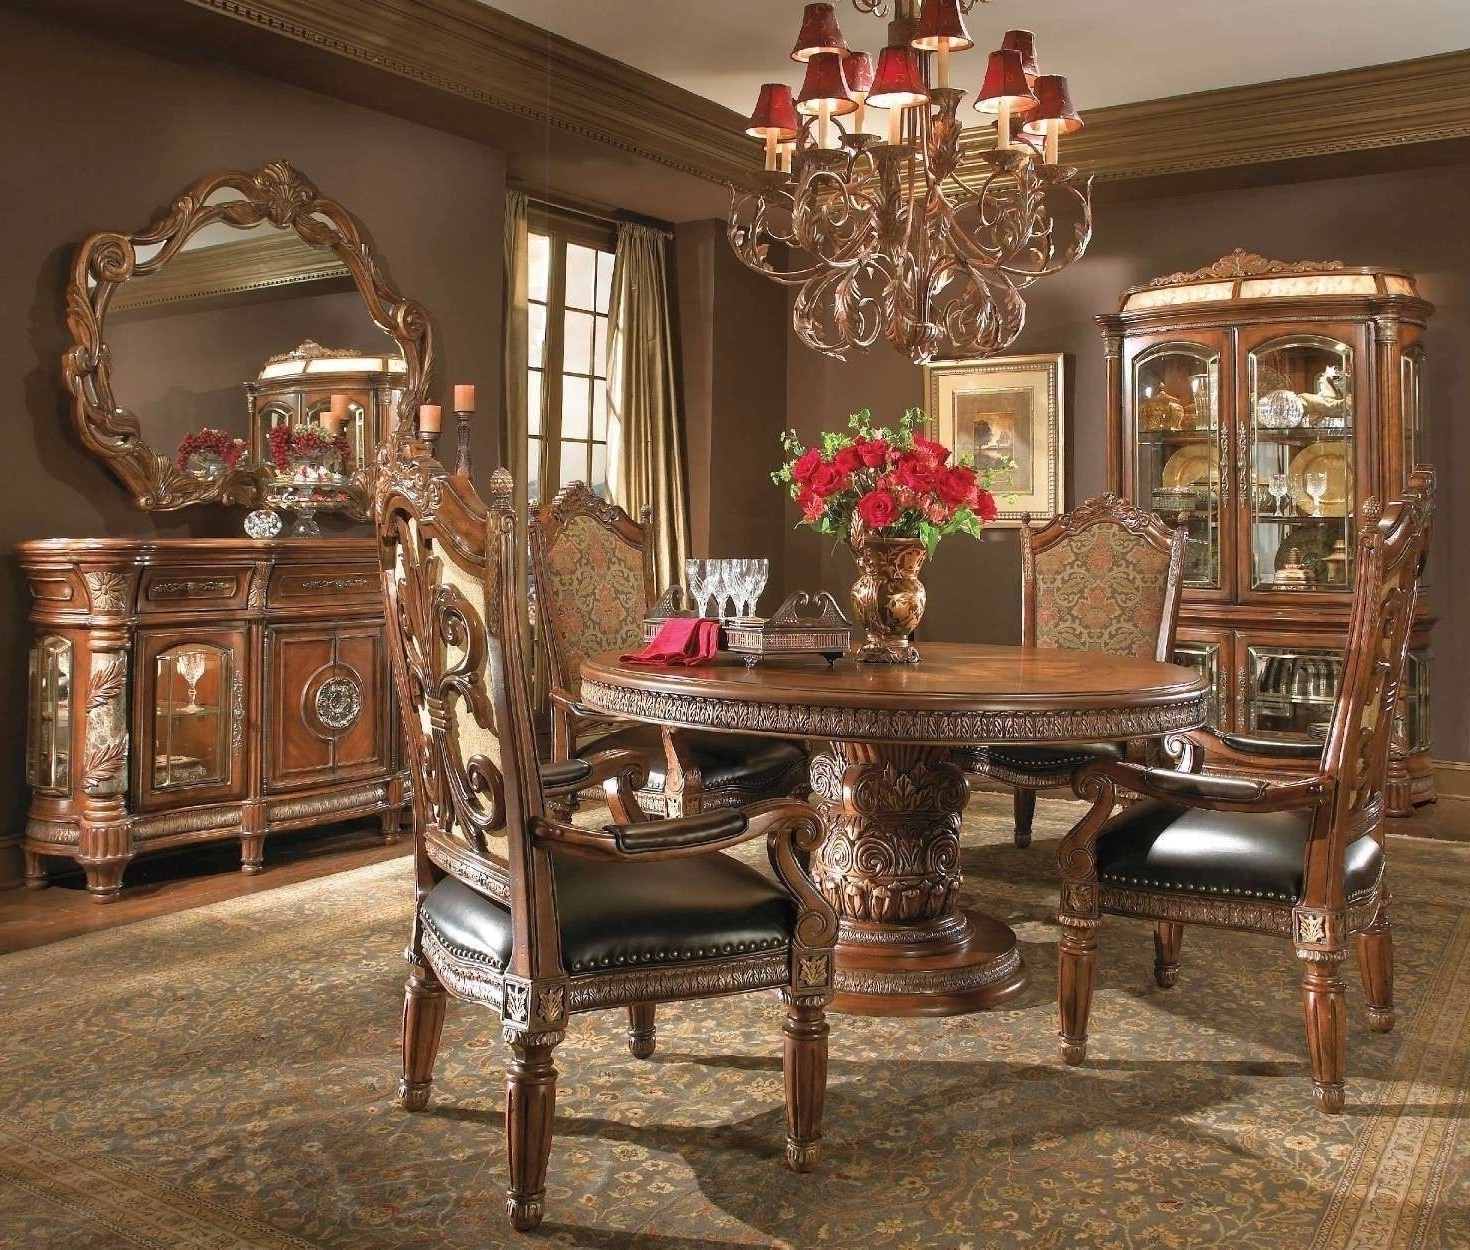 2018 Valencia 3 Piece Counter Sets With Bench In Michael Amini Villa Valencia Traditional Round Oval Table Chairs (View 18 of 25)